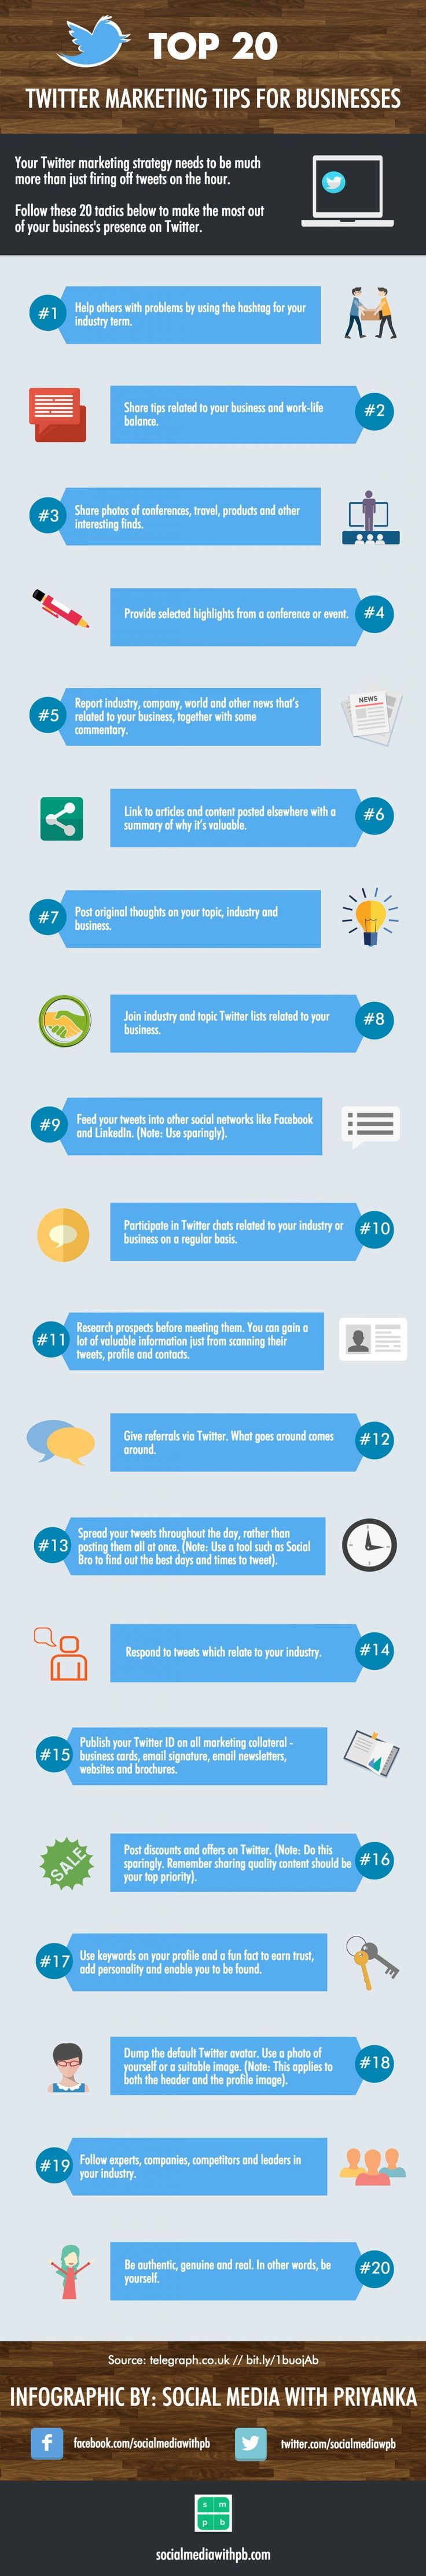 16 best Infographics images on Pinterest   Infographic, Info ...